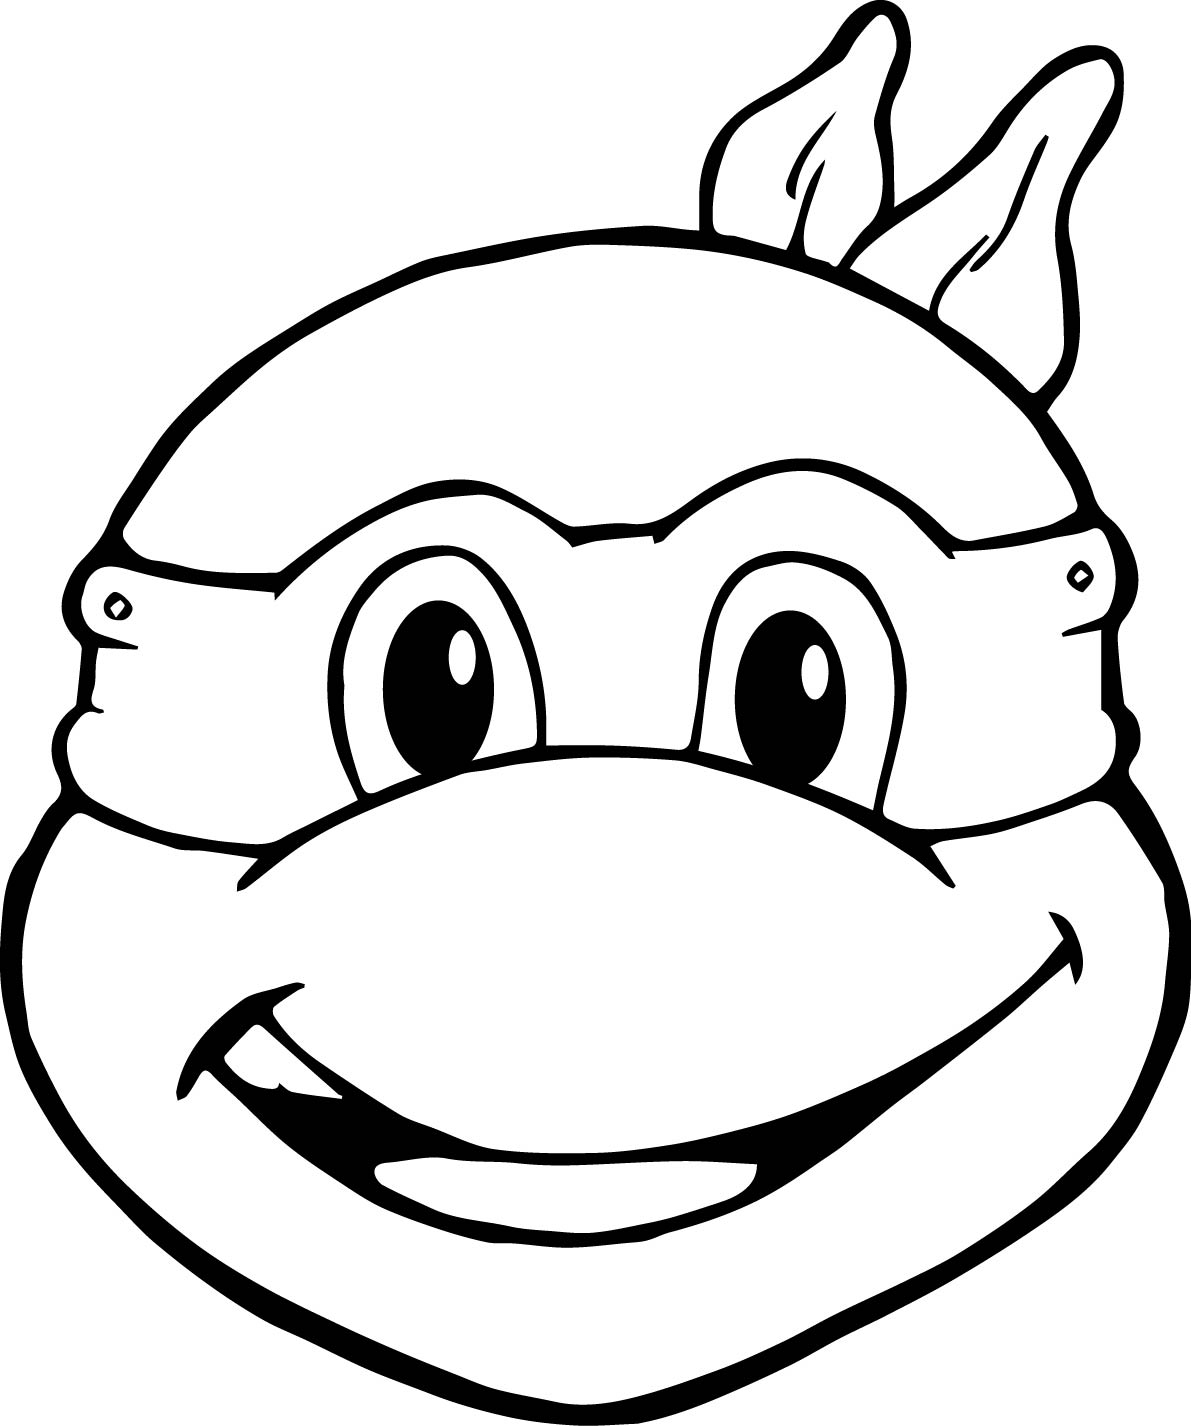 Ninja Turtle Face Drawing at GetDrawings.com | Free for personal use ...